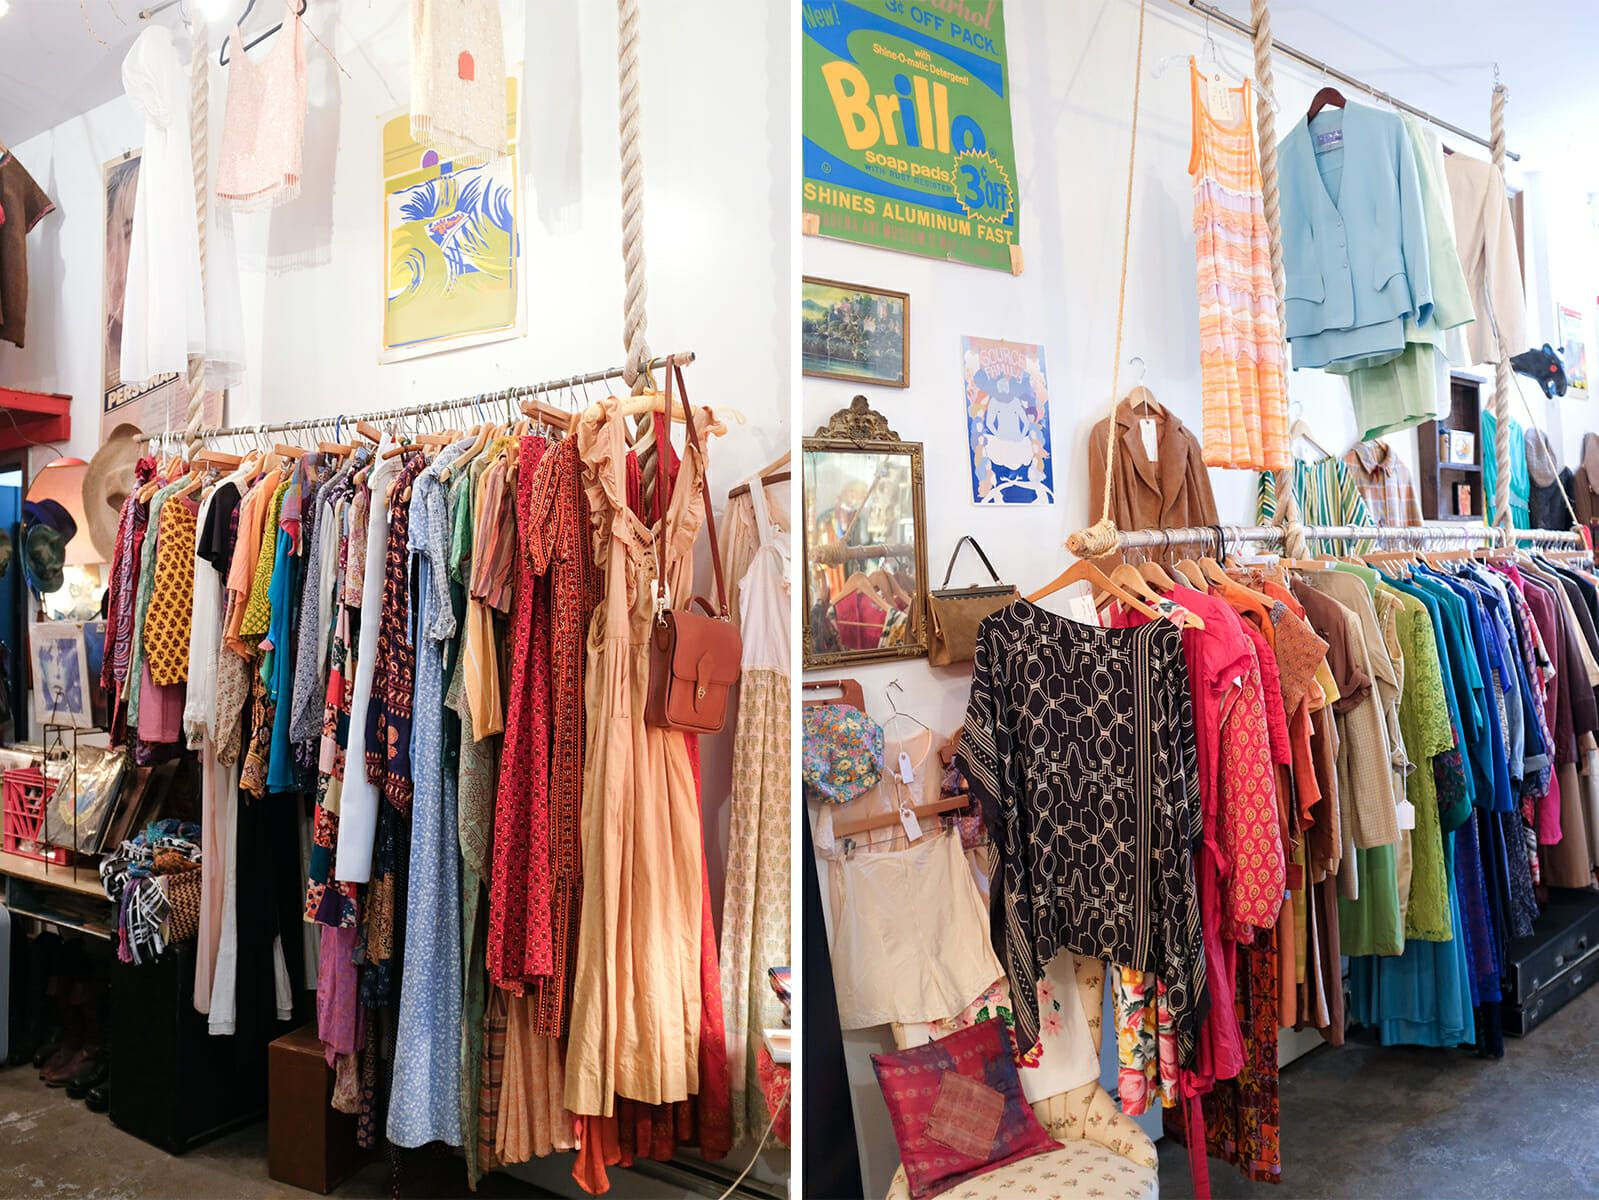 A Guide To The Best Vintage And Thrift Stores In New York Thrift